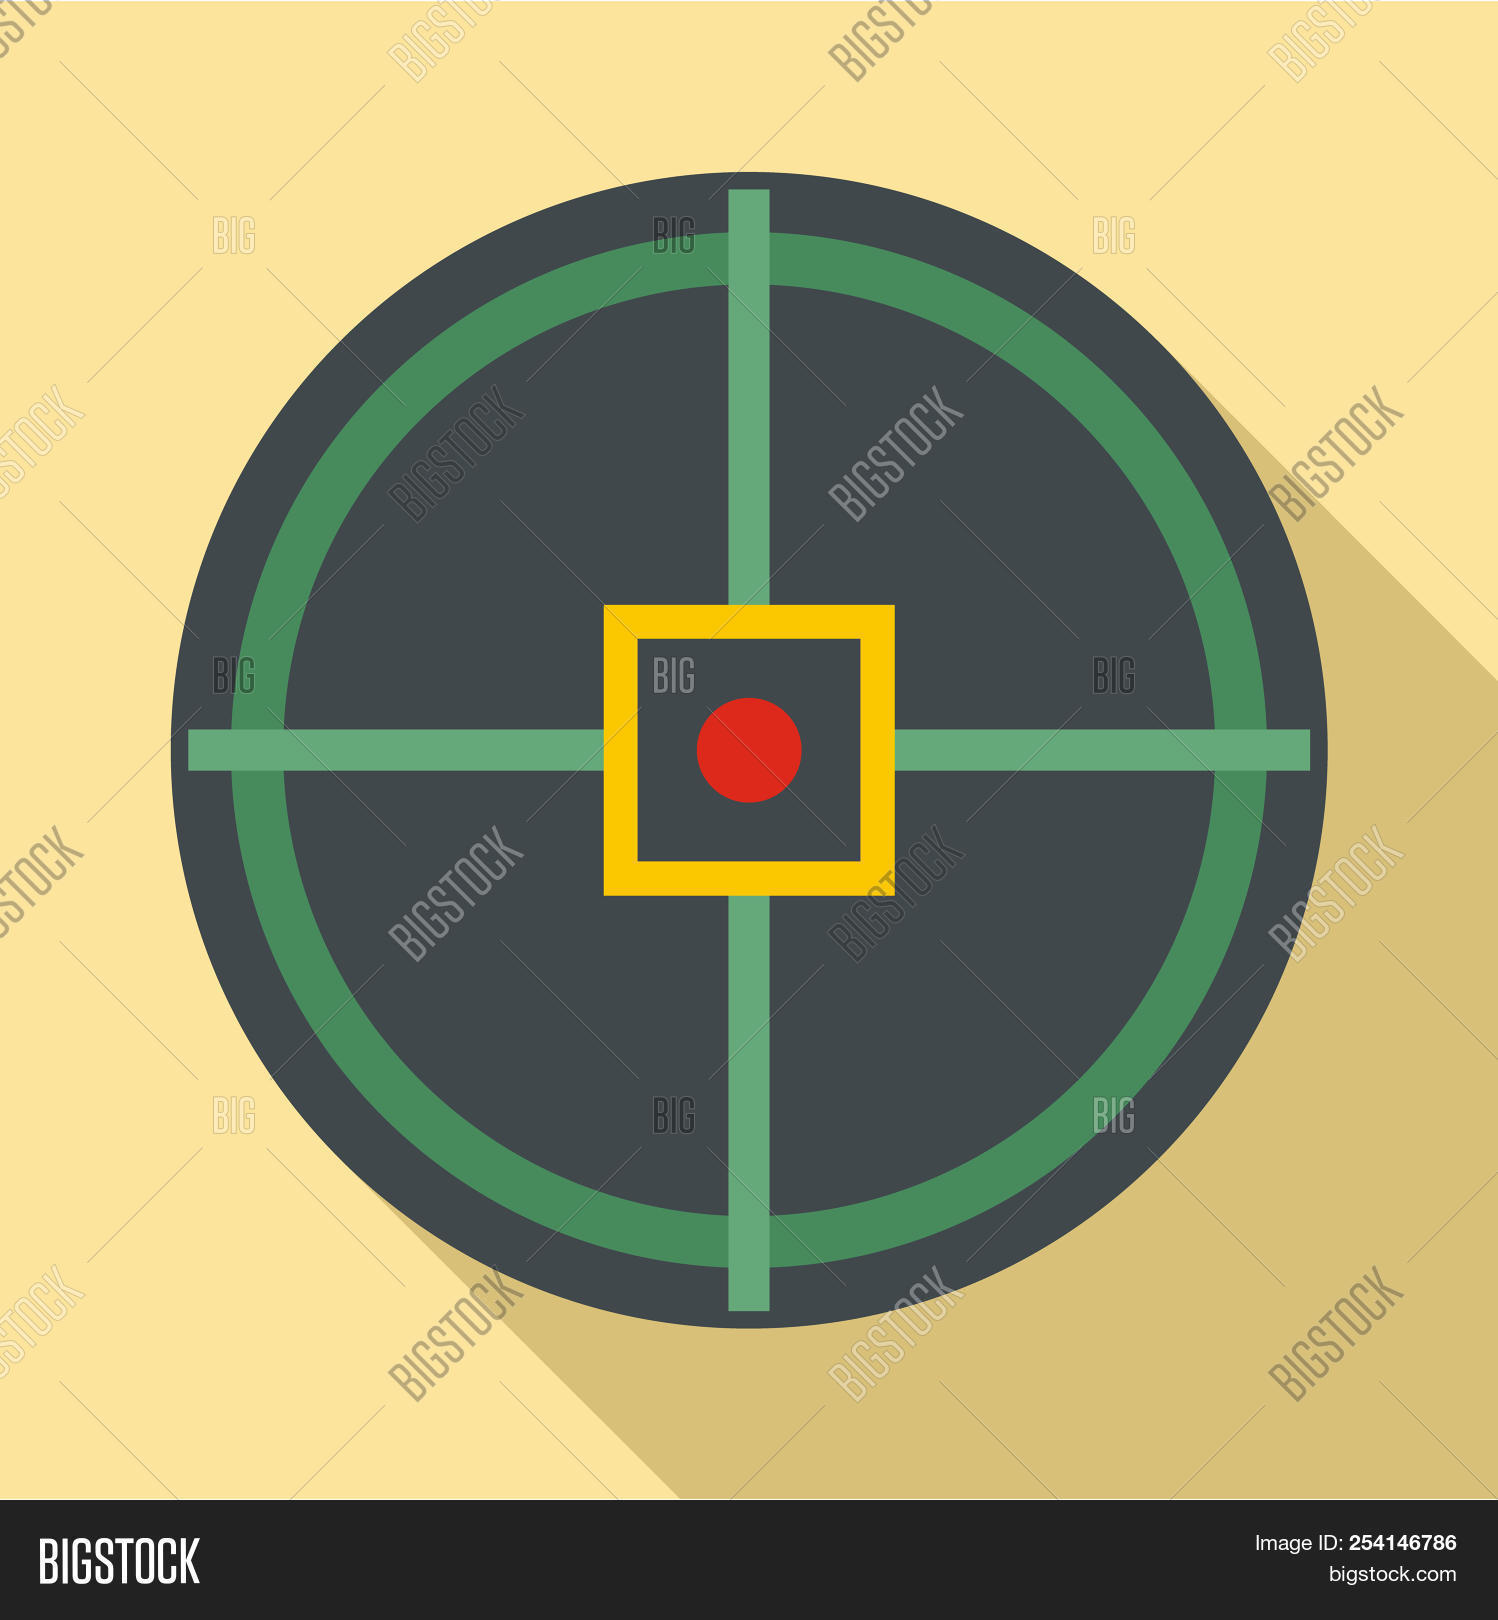 red point gun aim icon image photo free trial bigstock bigstock